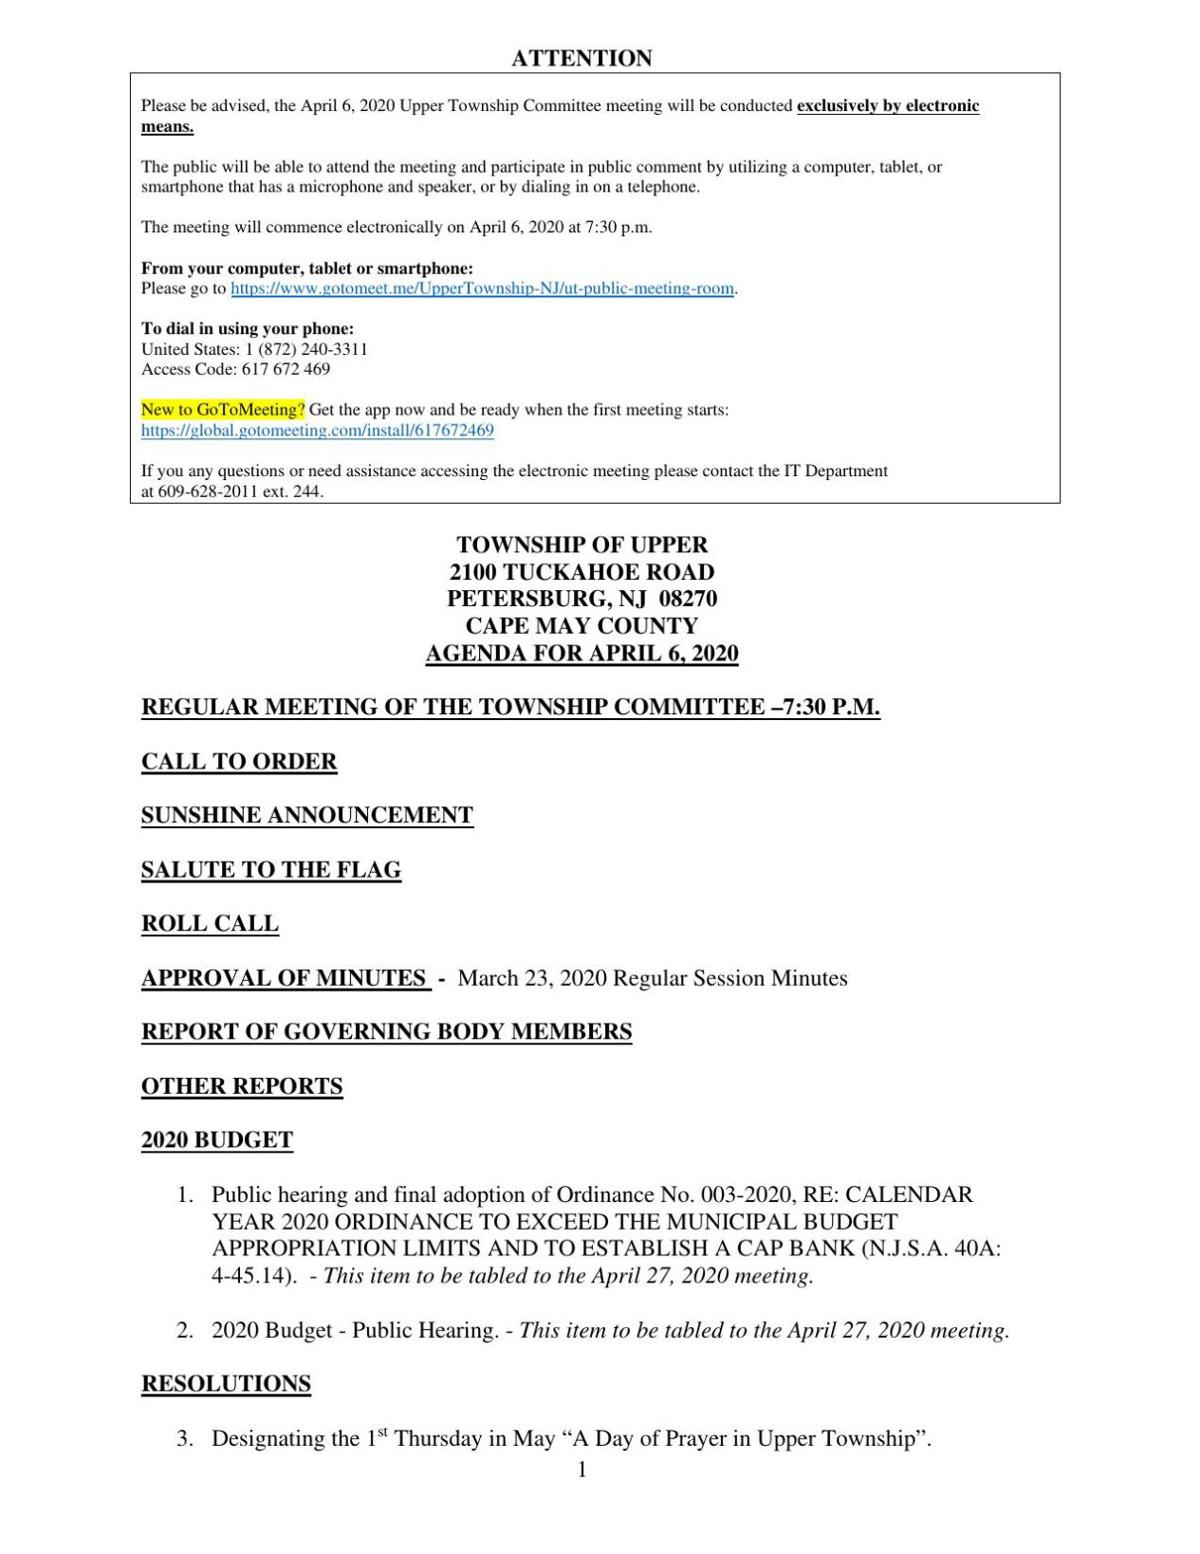 Upper Township Committee April 6, 2020 Meeting Agenda